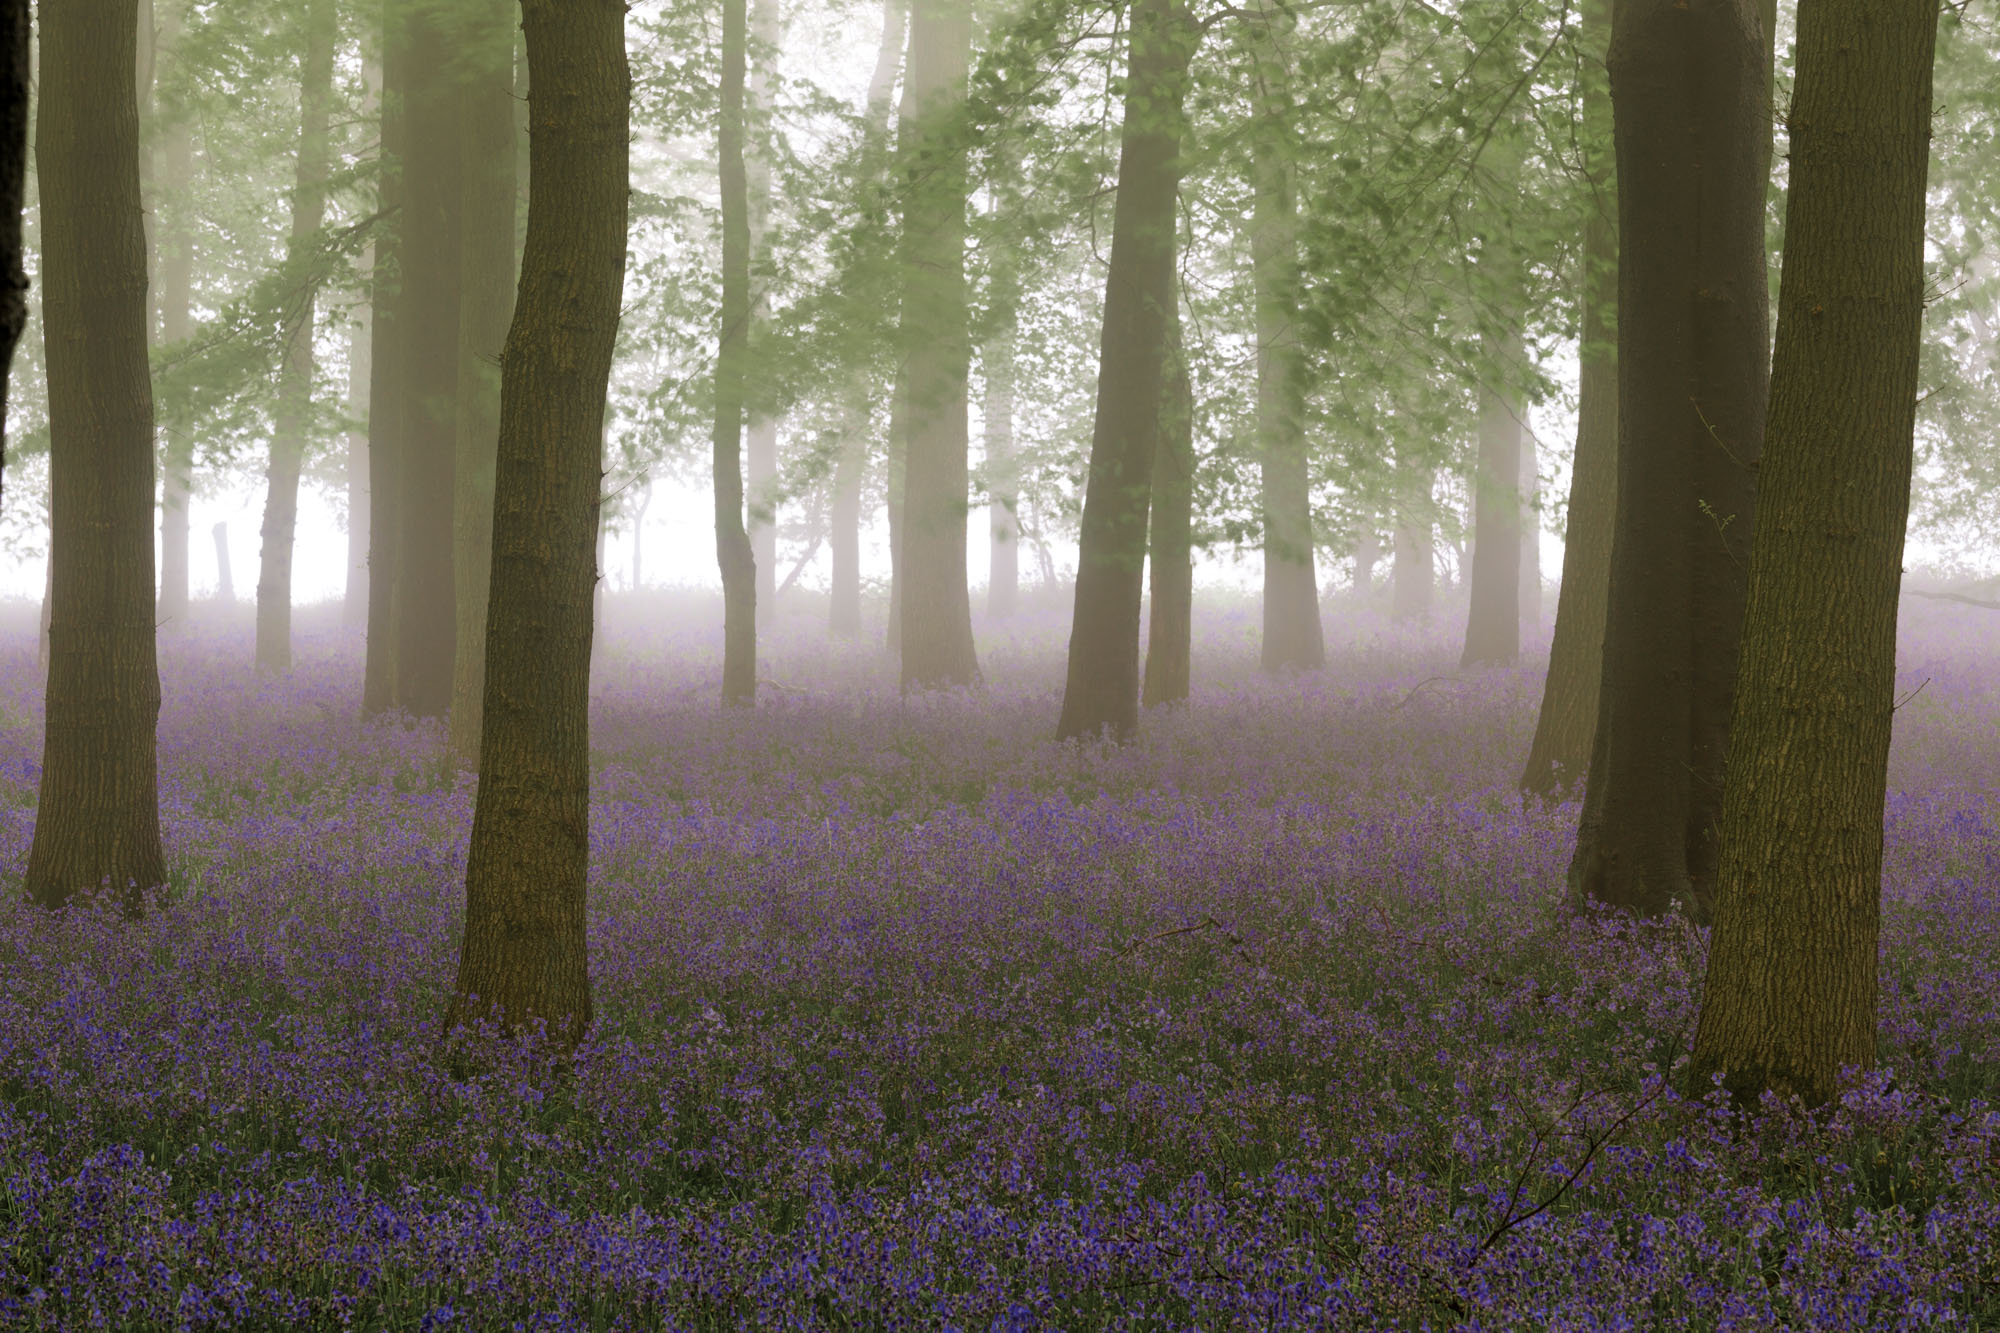 antonyz long exposure landscape photograph of bluebells in a misty woodland in England